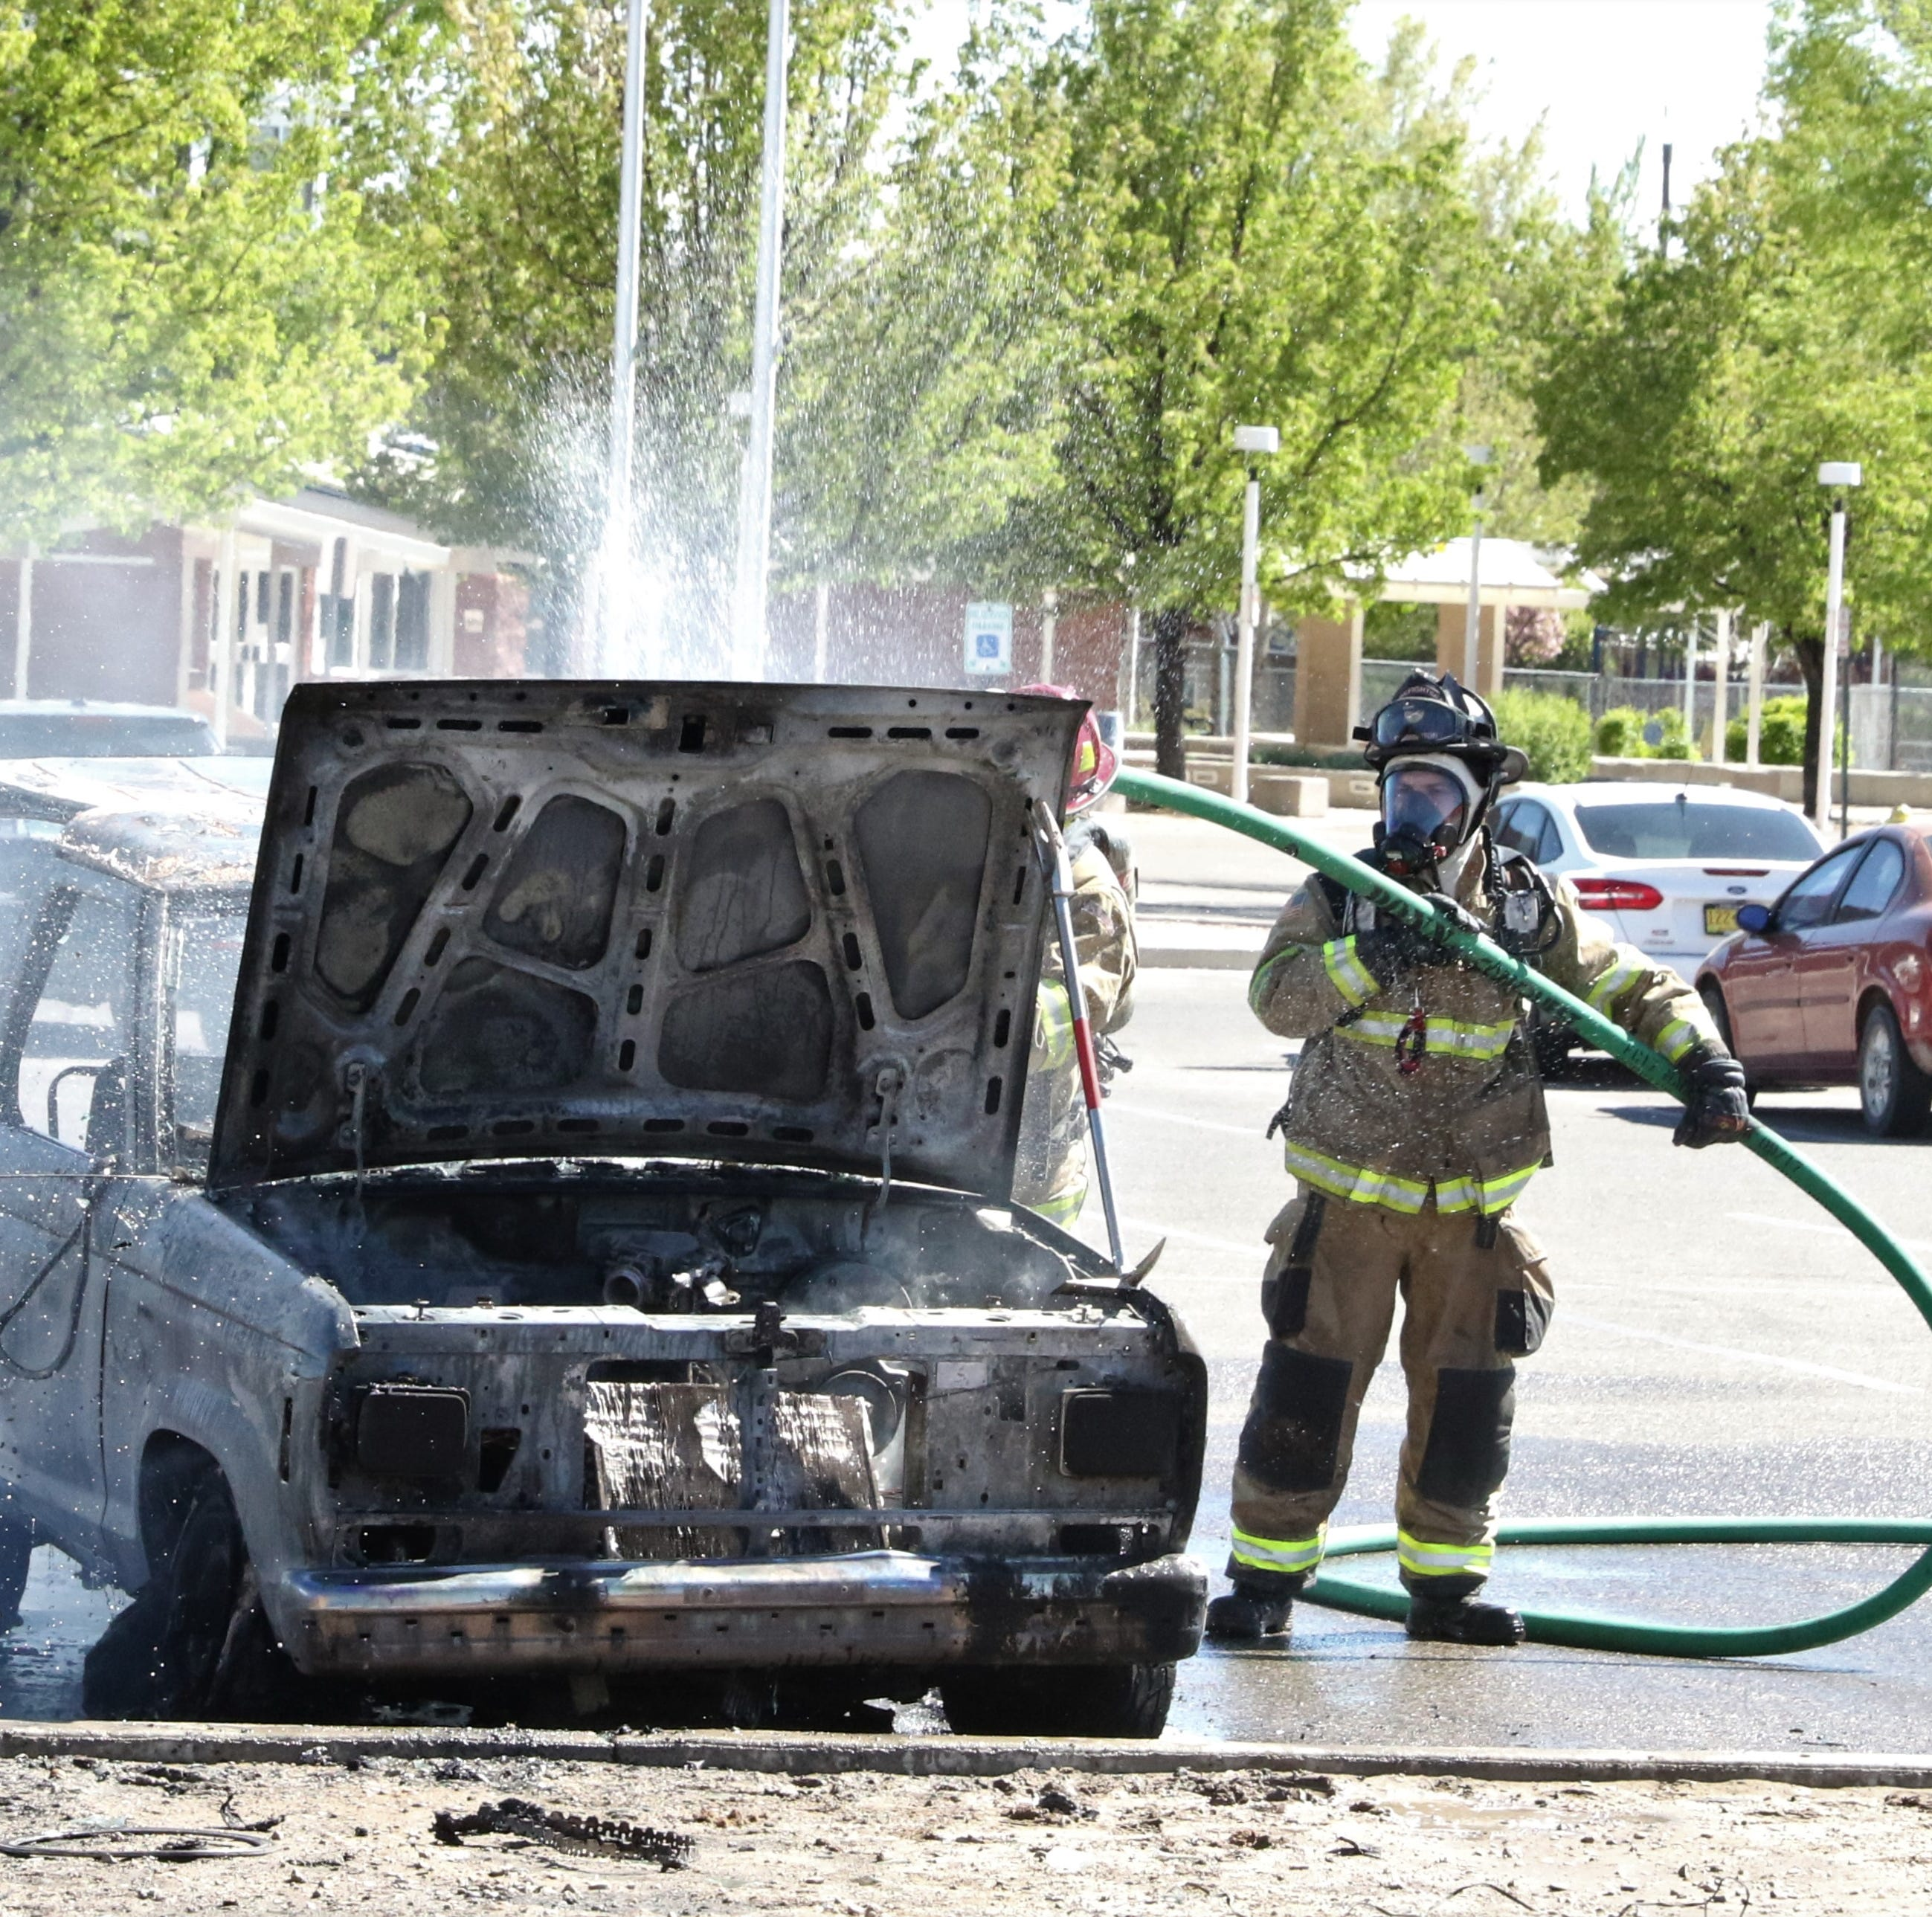 Firefighters extinguish car fire behind movie theater